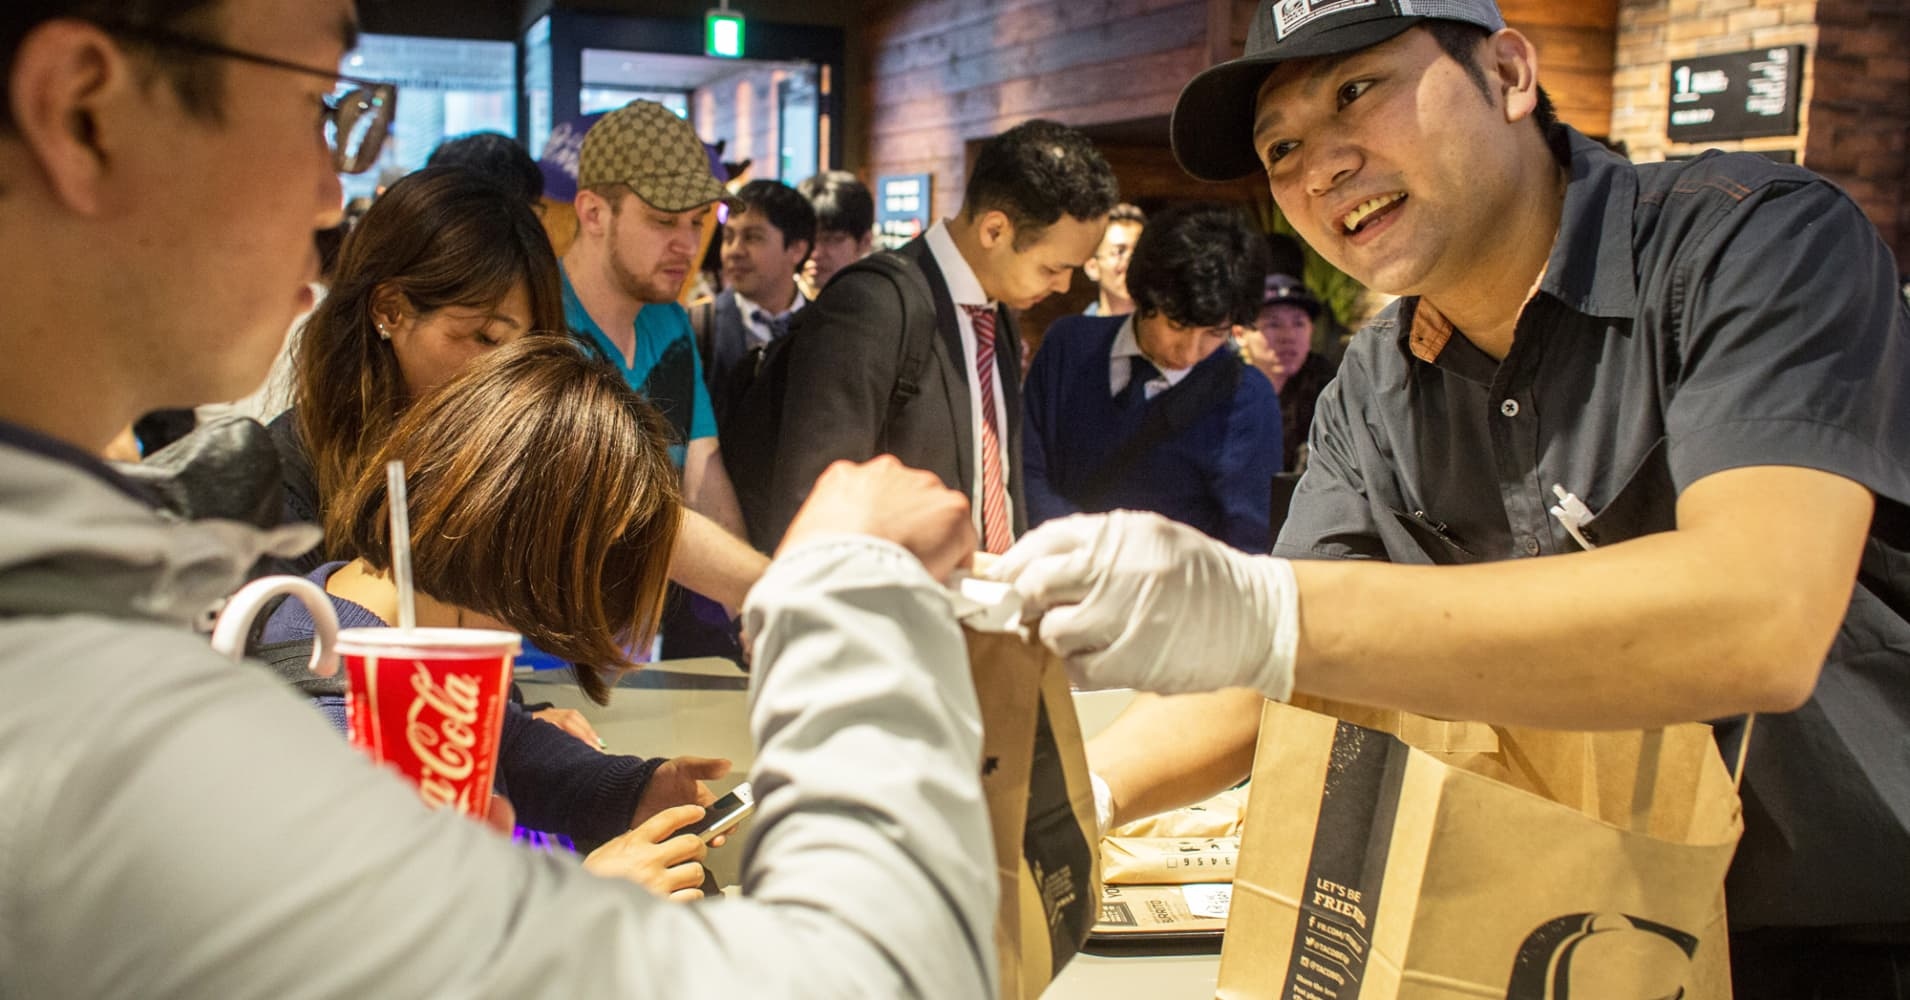 A man receives his order at the new Taco Bell during the official opening on April 21, 2015 in Tokyo.